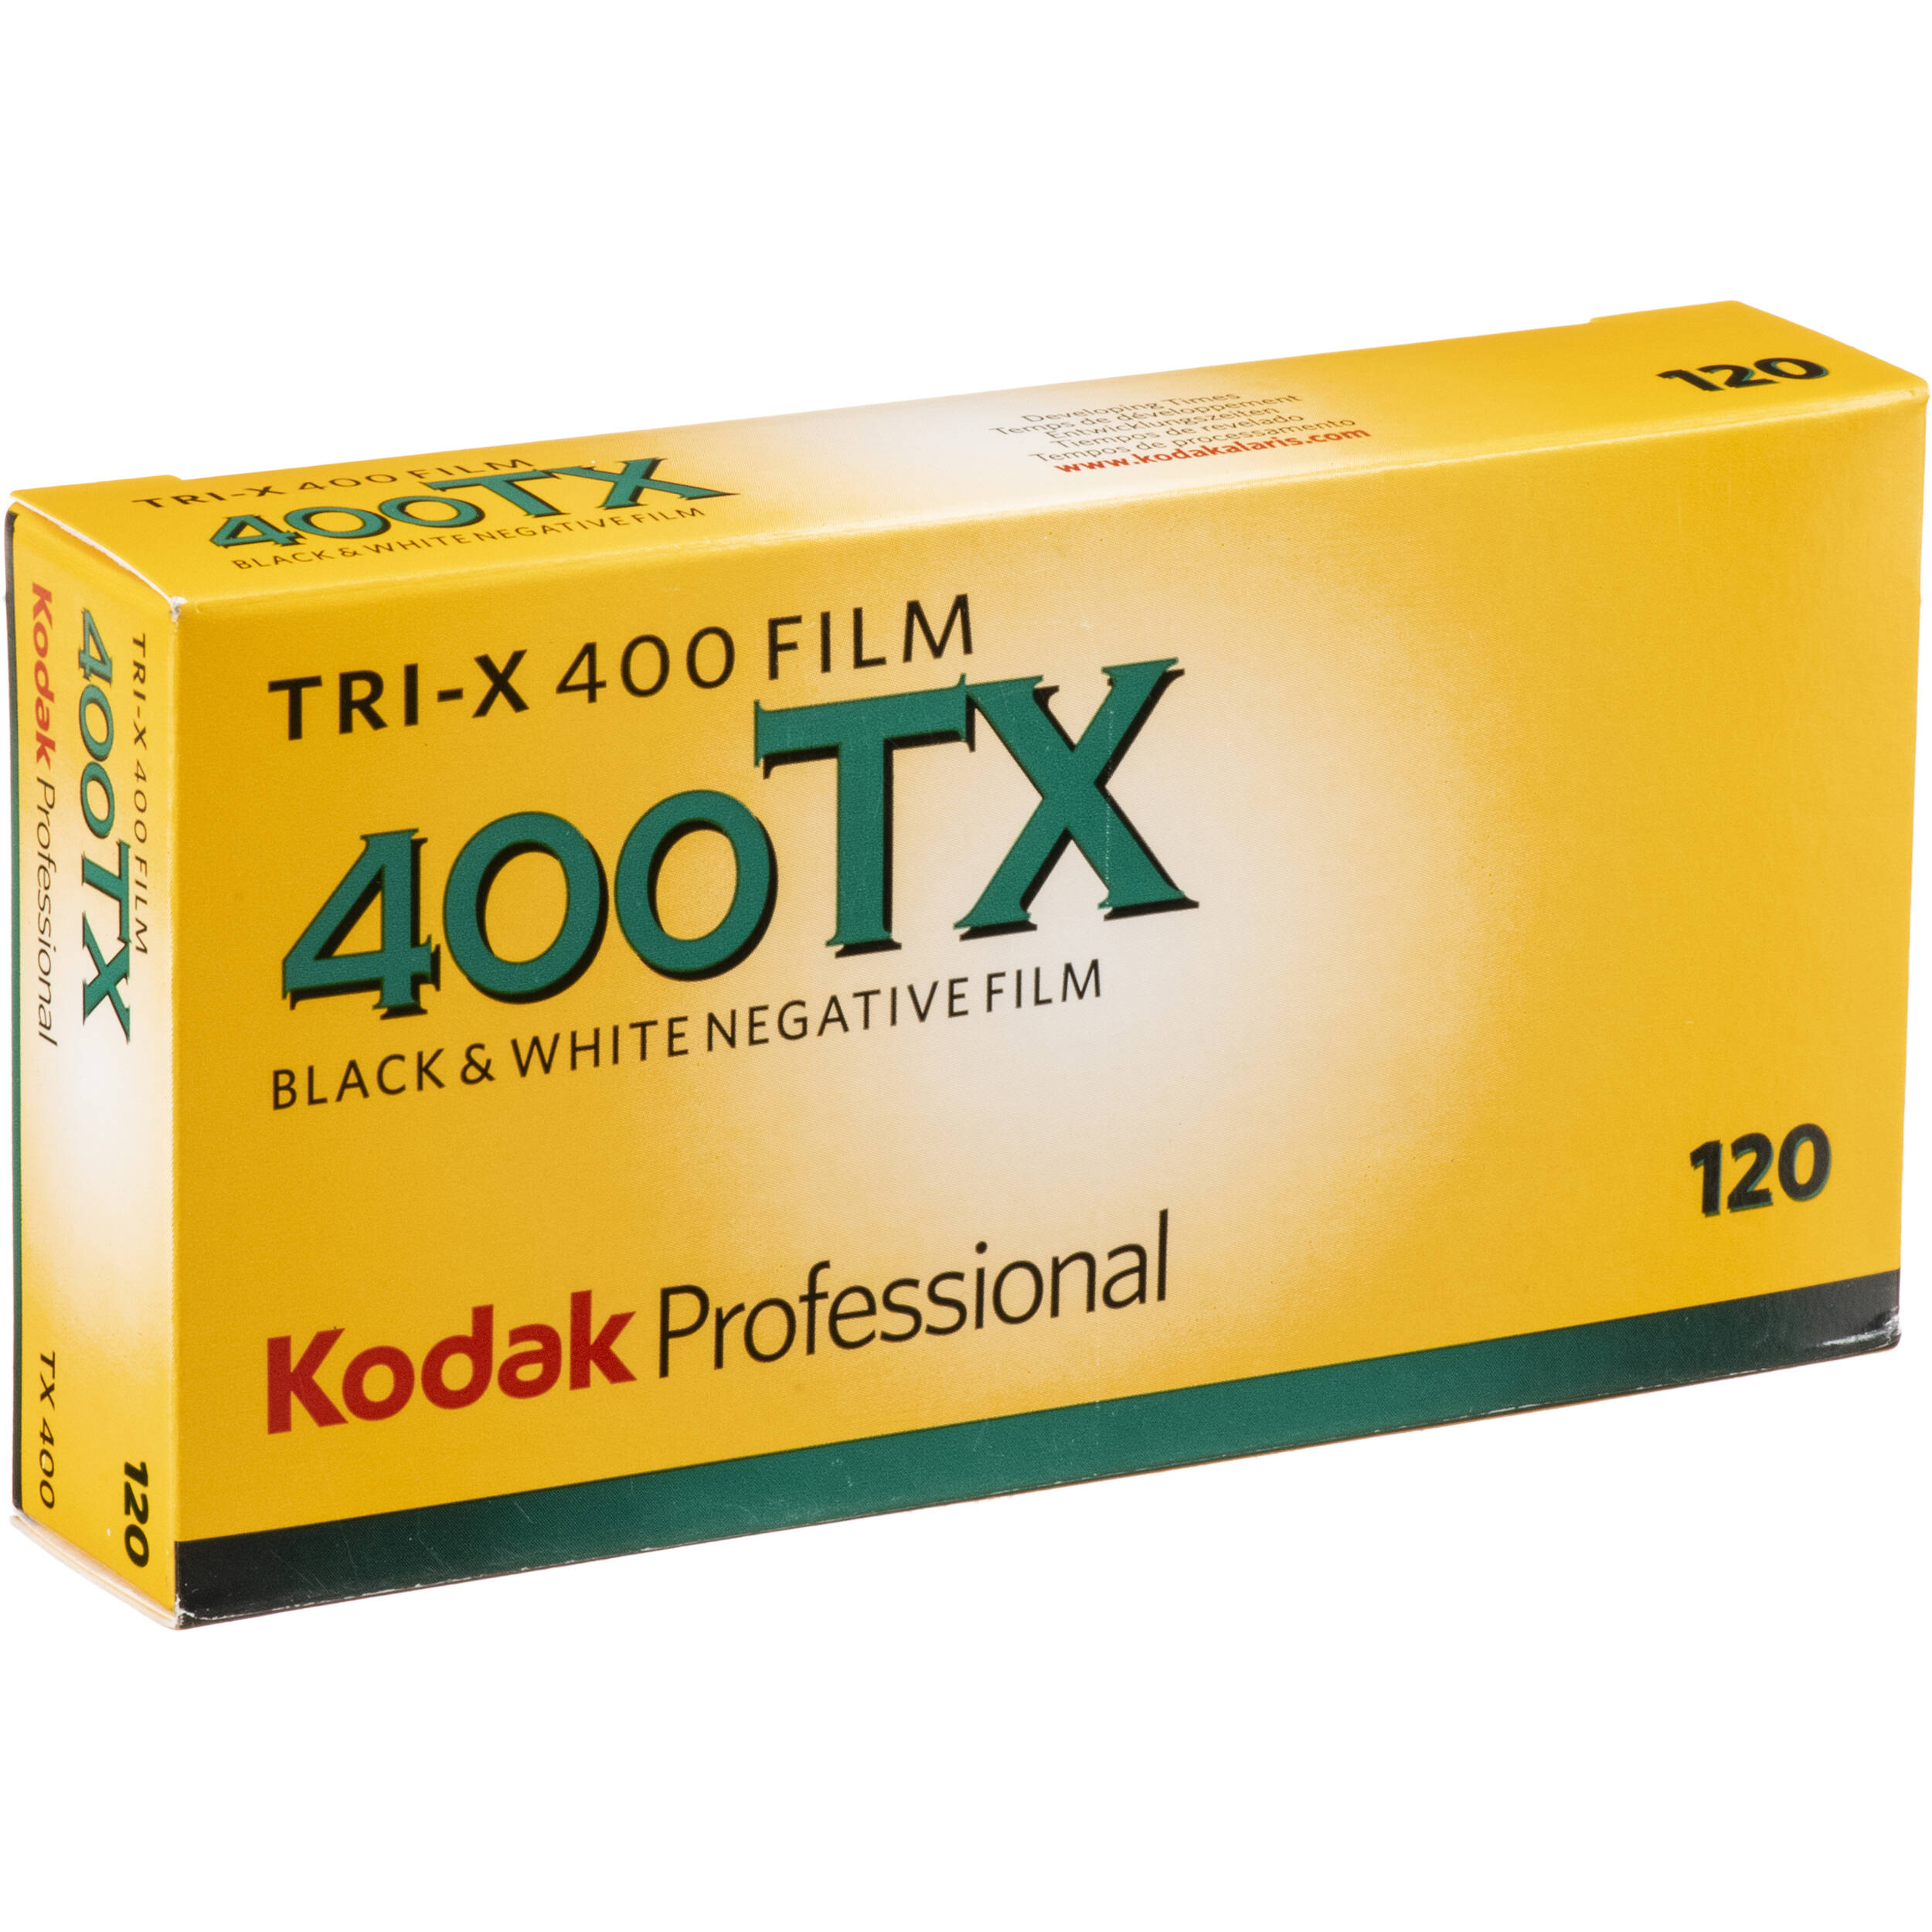 Kodak professional tri x 400 black and white negative 1153659 for Aufstellpool 400 x 120